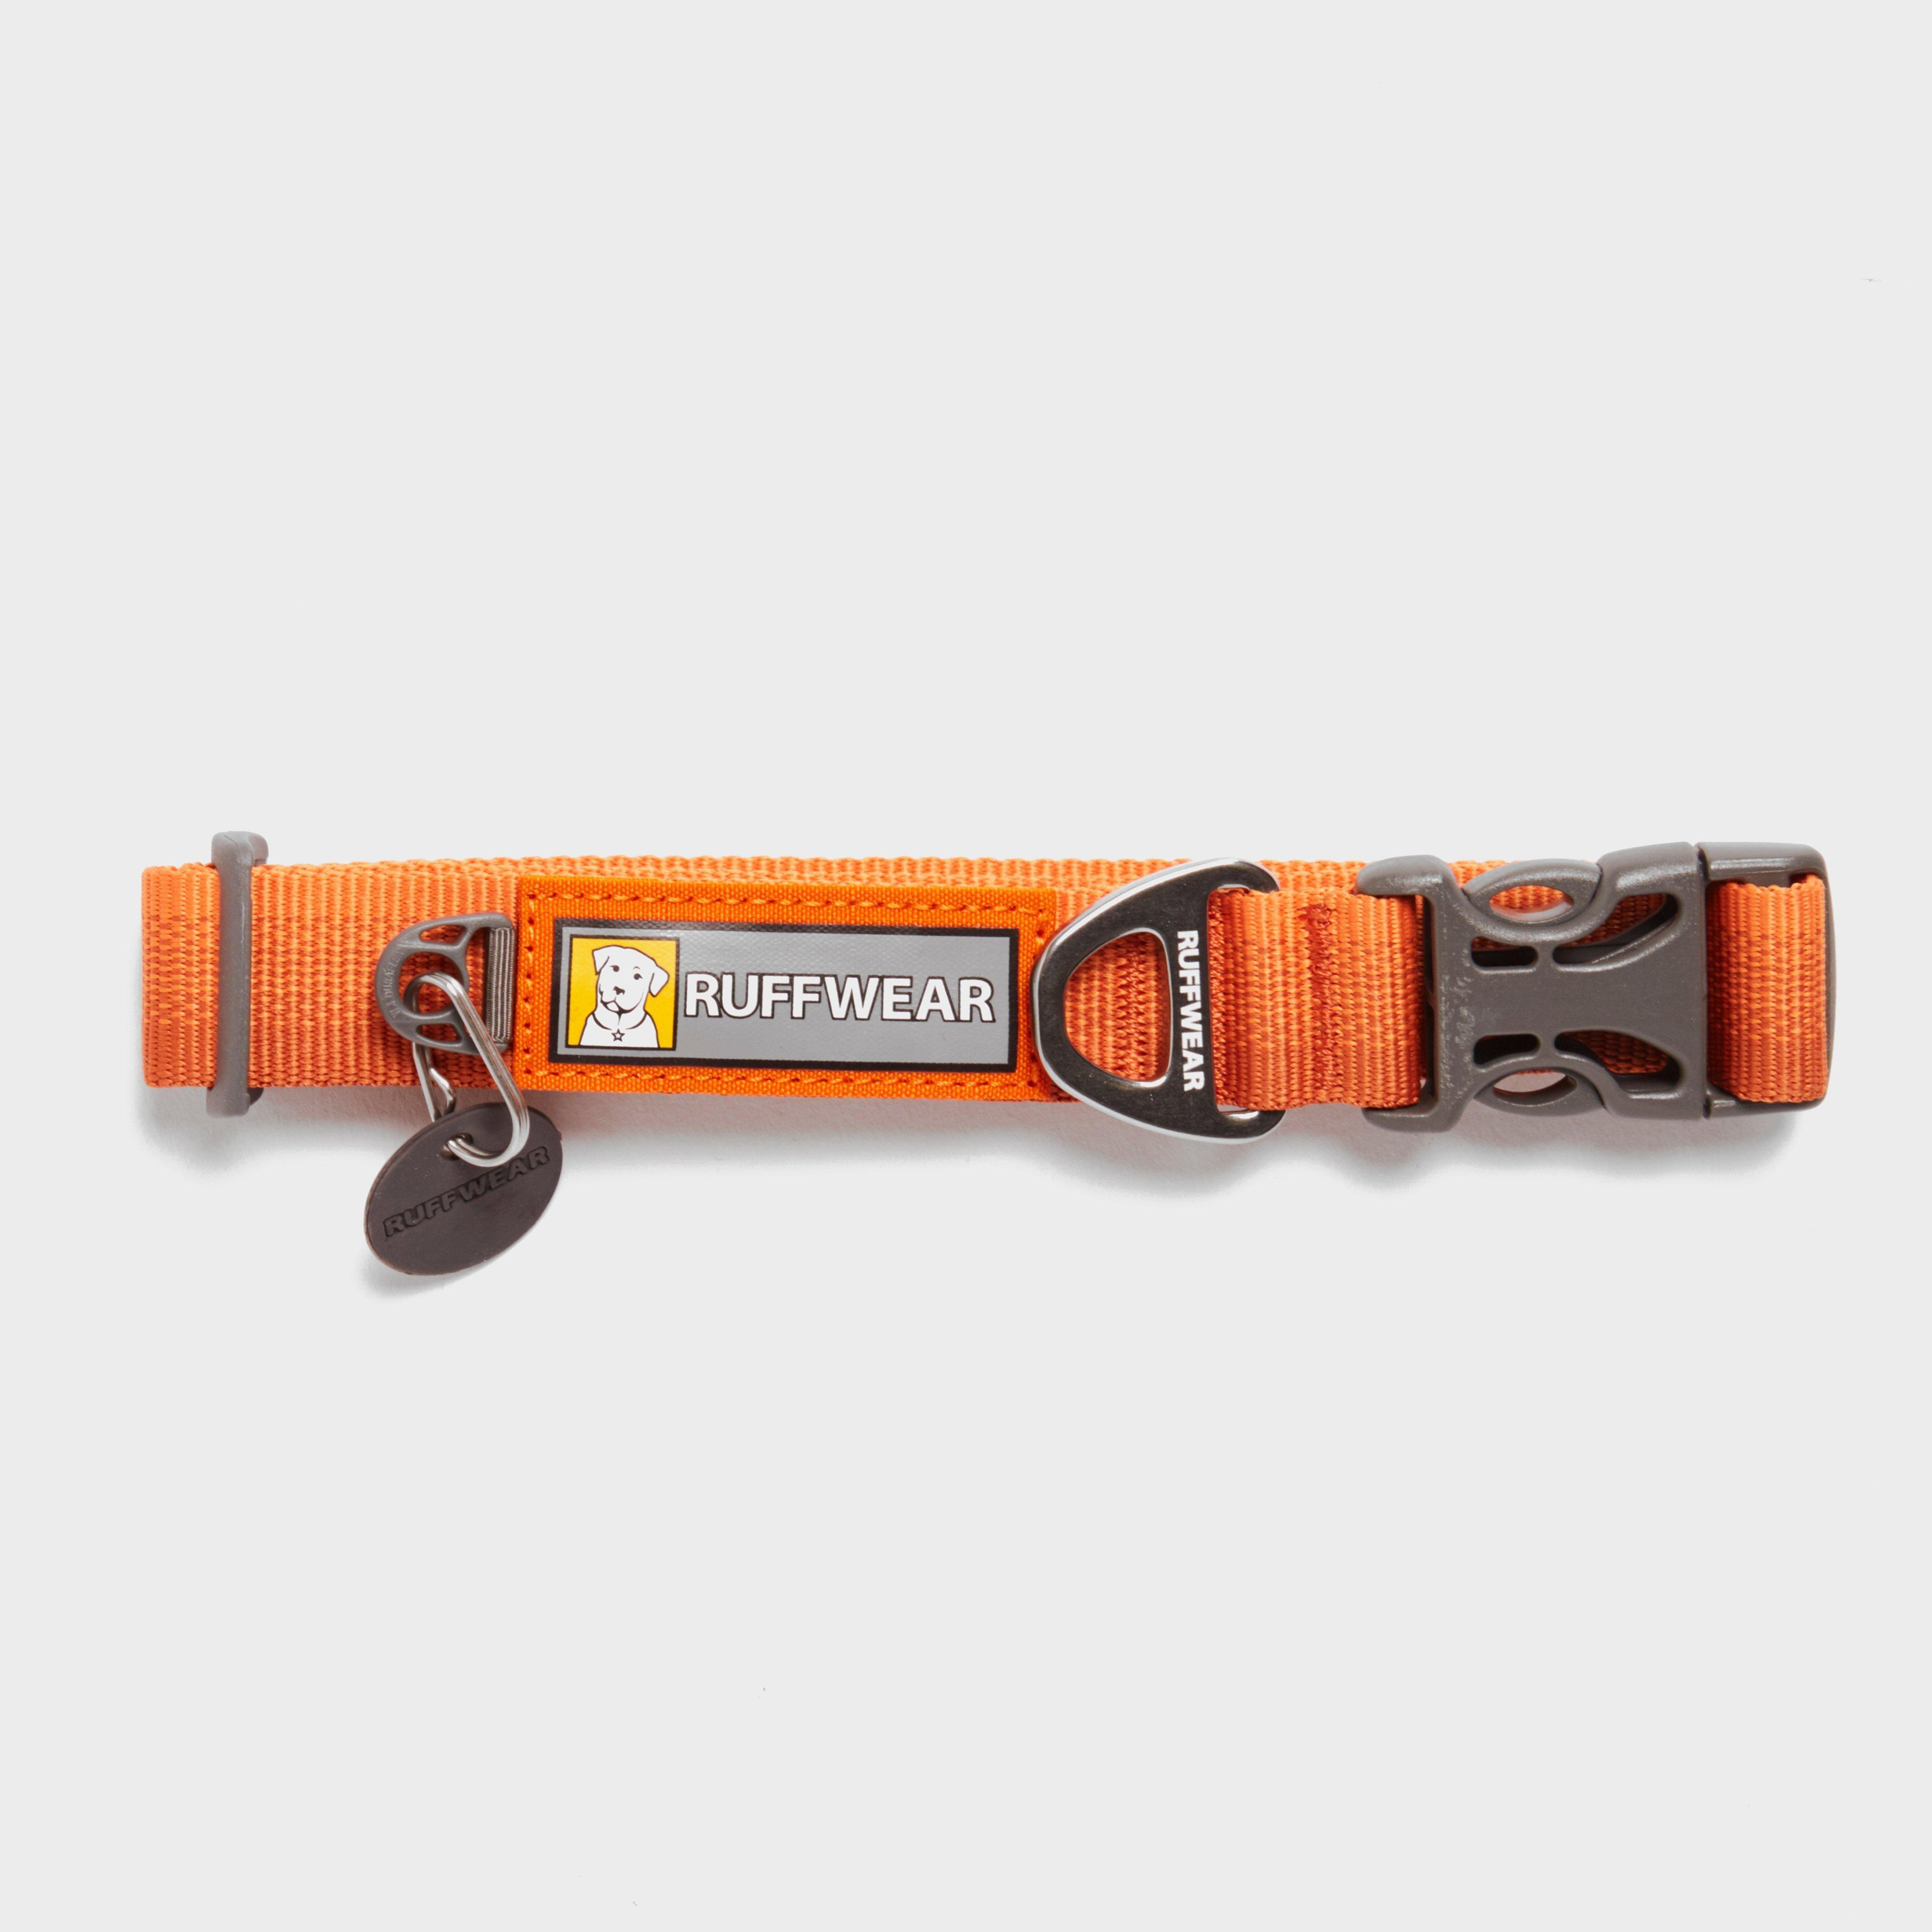 Ruffwear Ruffwear Front Range Dog Collar, Orange